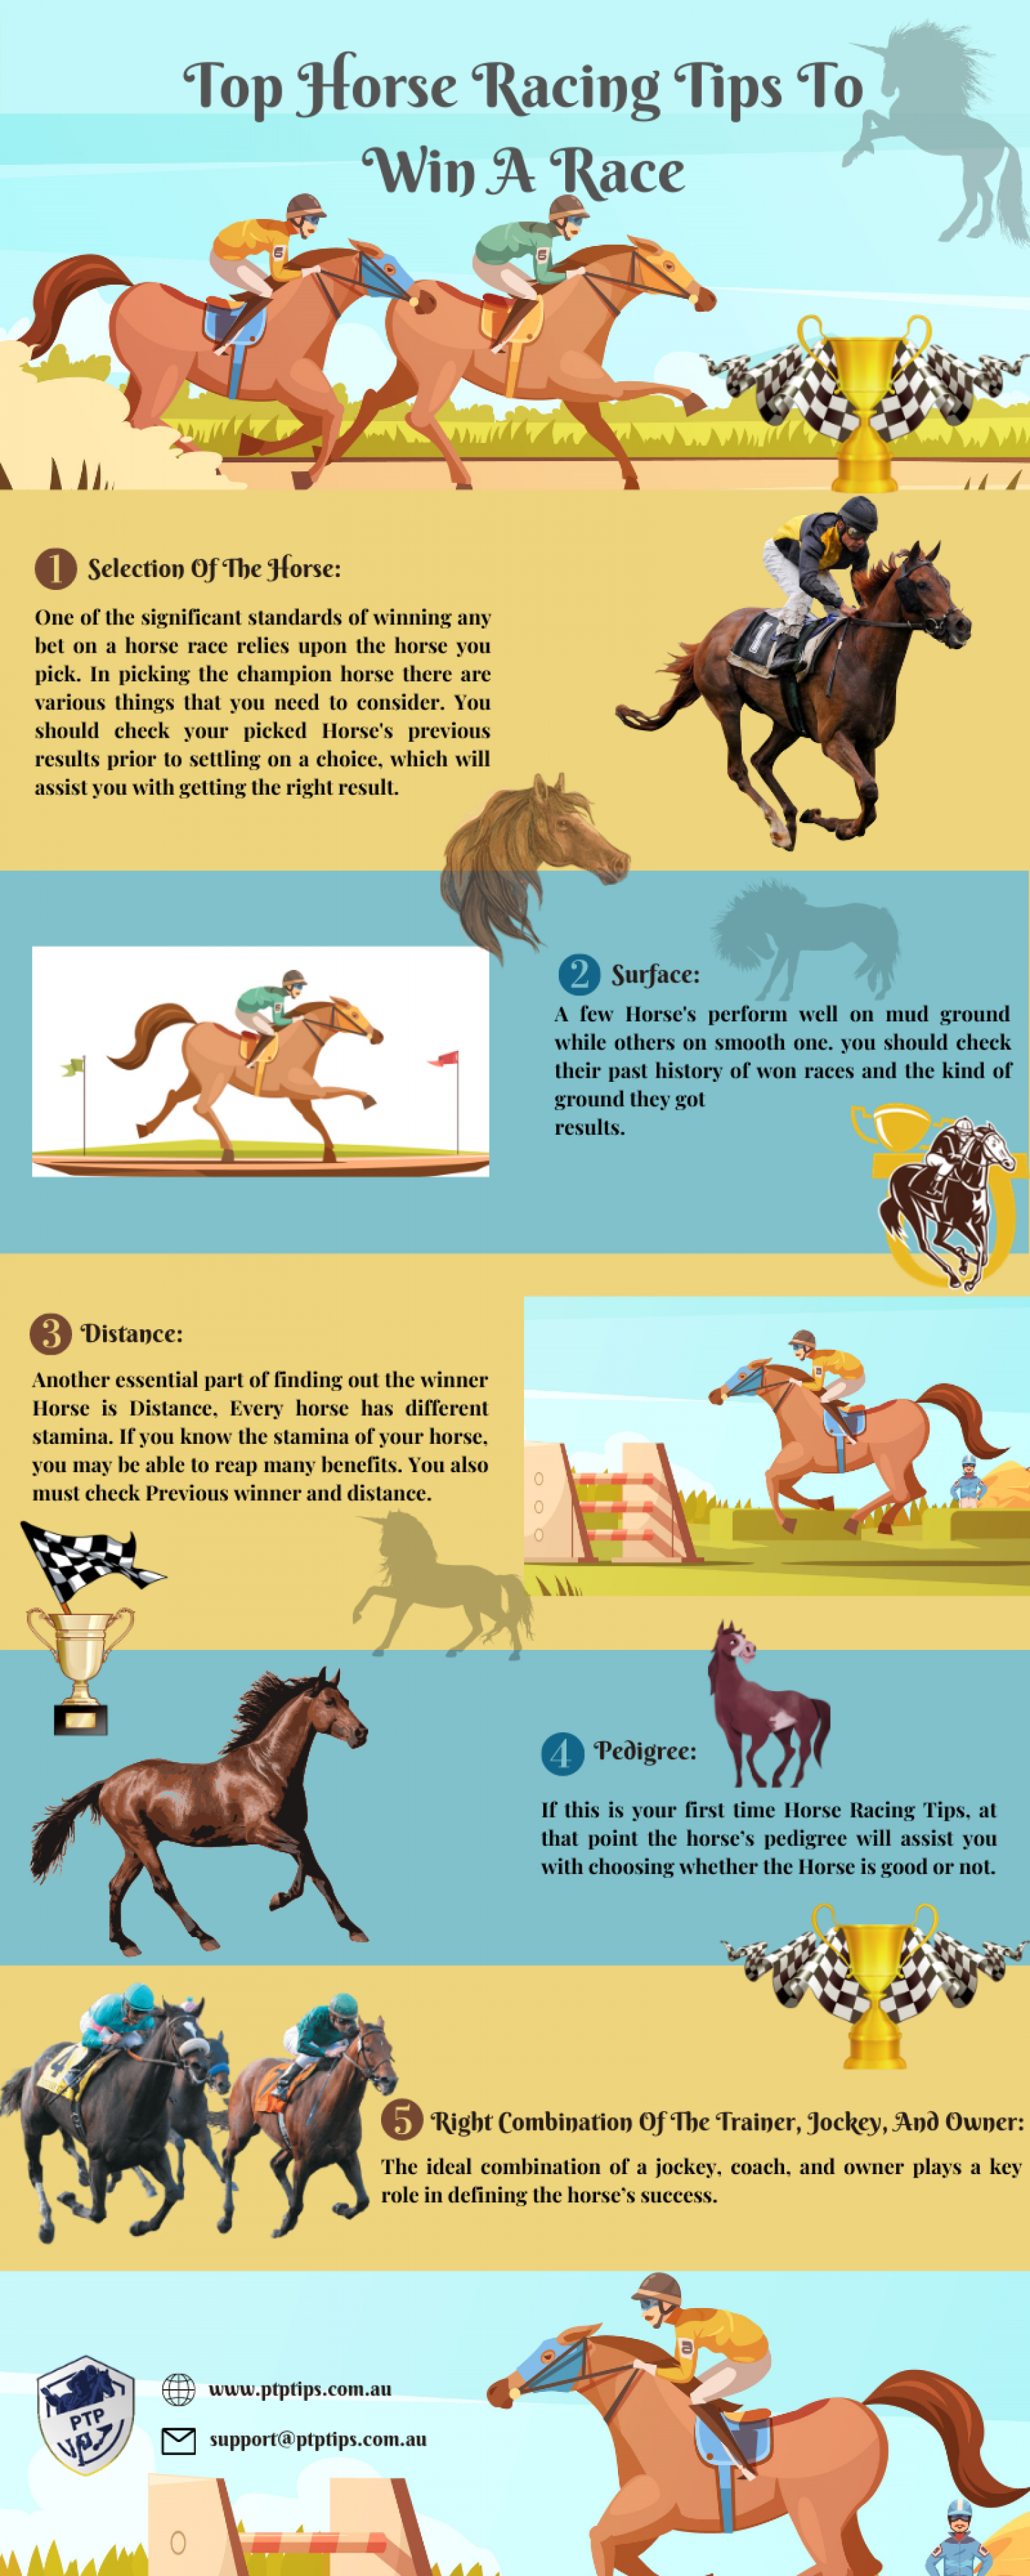 Top Horse Racing Tips To Win A Race Infographic